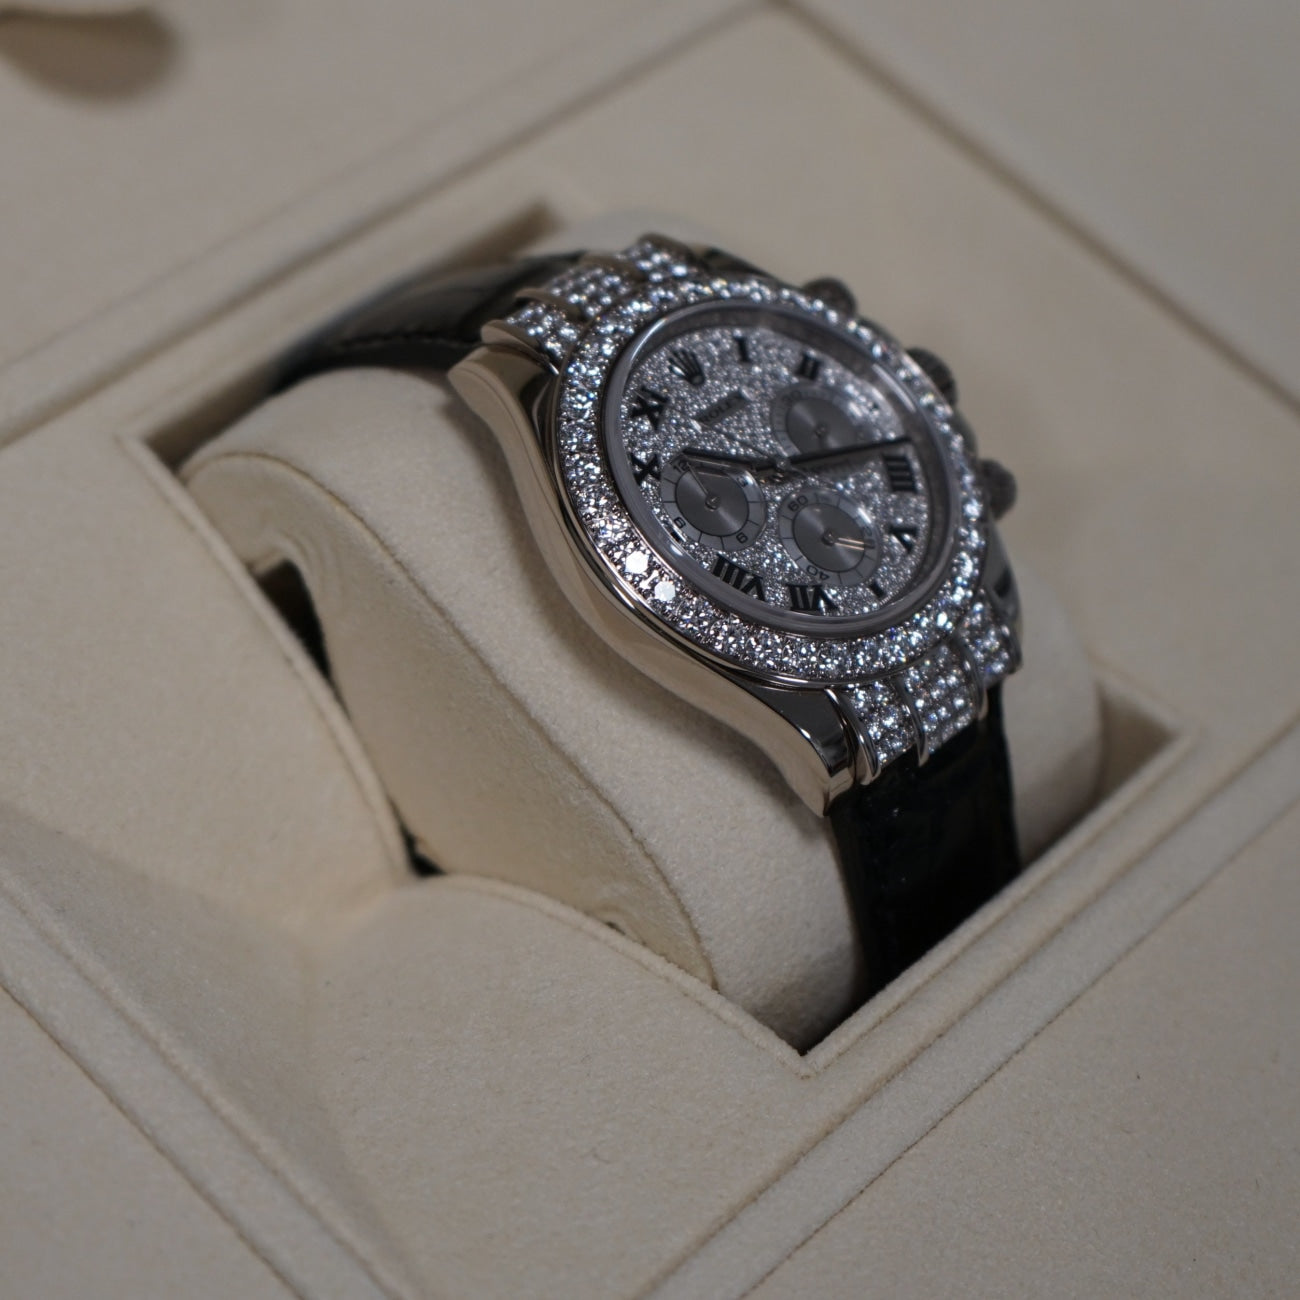 Pre-Owned Rolex Jewelry - LNIB Rolex Cosmograph Daytona 40mm white gold with diamonds | Manfredi Jewels